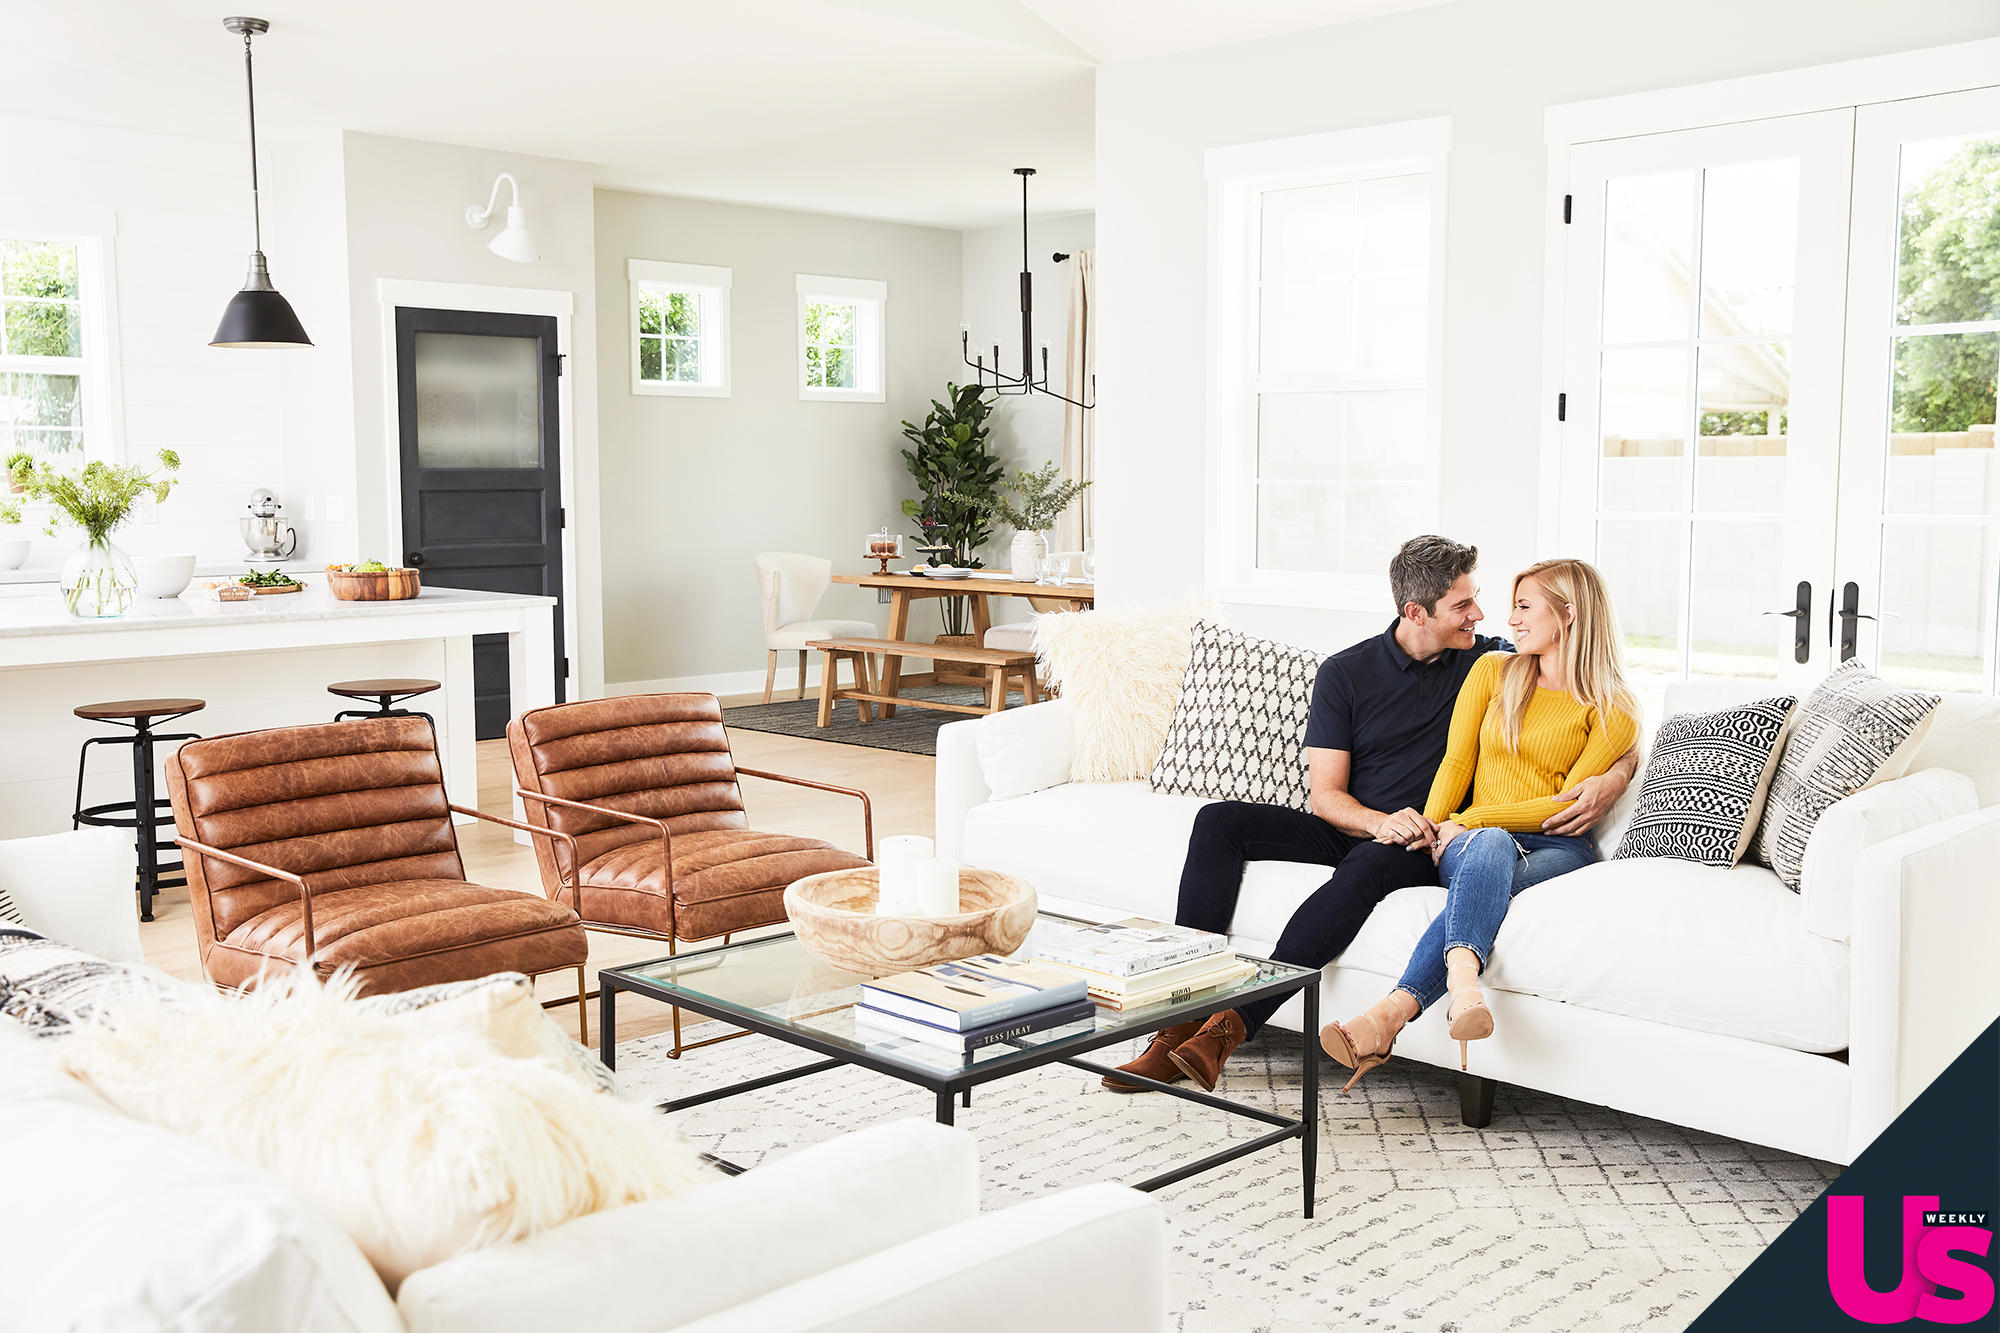 Arie Luyendyk Jr Lauren Burnham New Home - The couple — who will marry in Maui, Hawaii, January 12 — turned to Wayfair Registry to help decorate their home to create a modern-farmhouse theme.